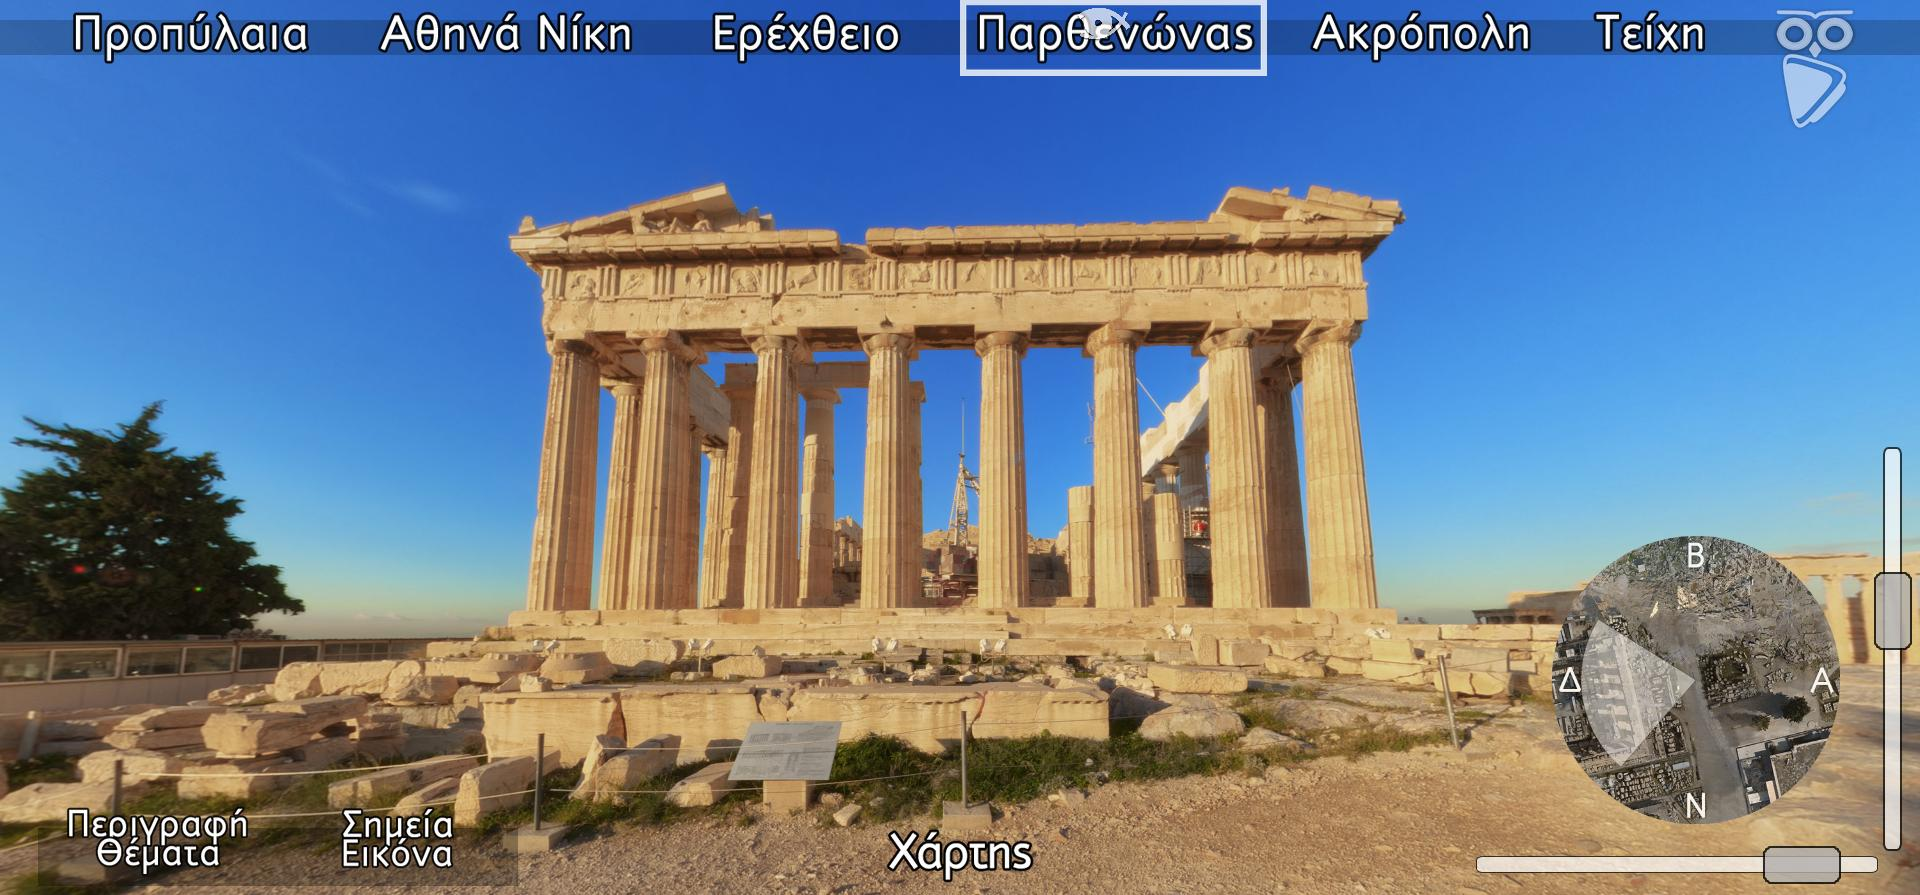 Here, you can navigate on the modern Acropolis